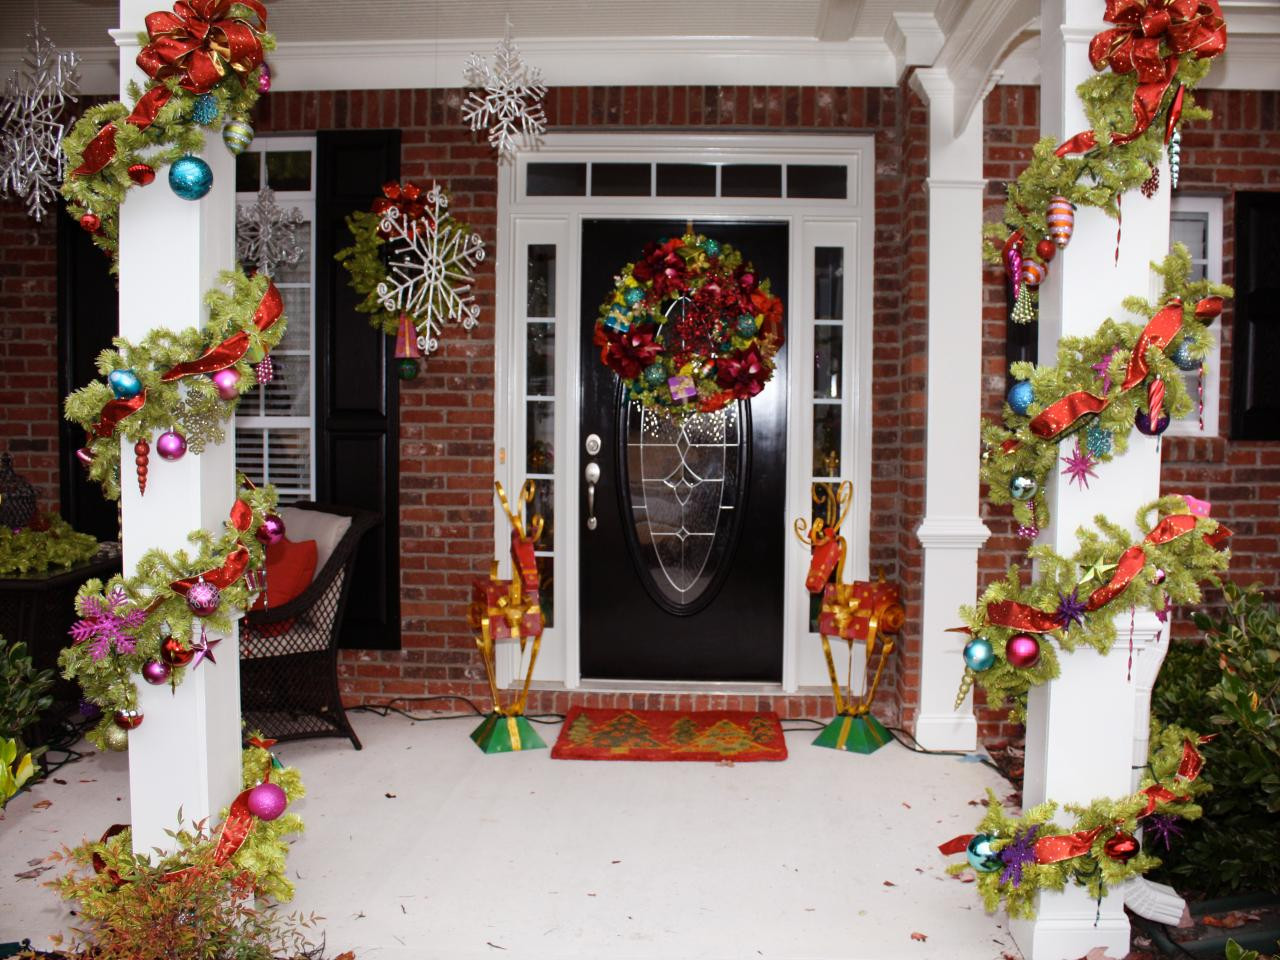 Porch Christmas Decorations  Awesome Enrtry Way With Front Porch Christmas Decorations